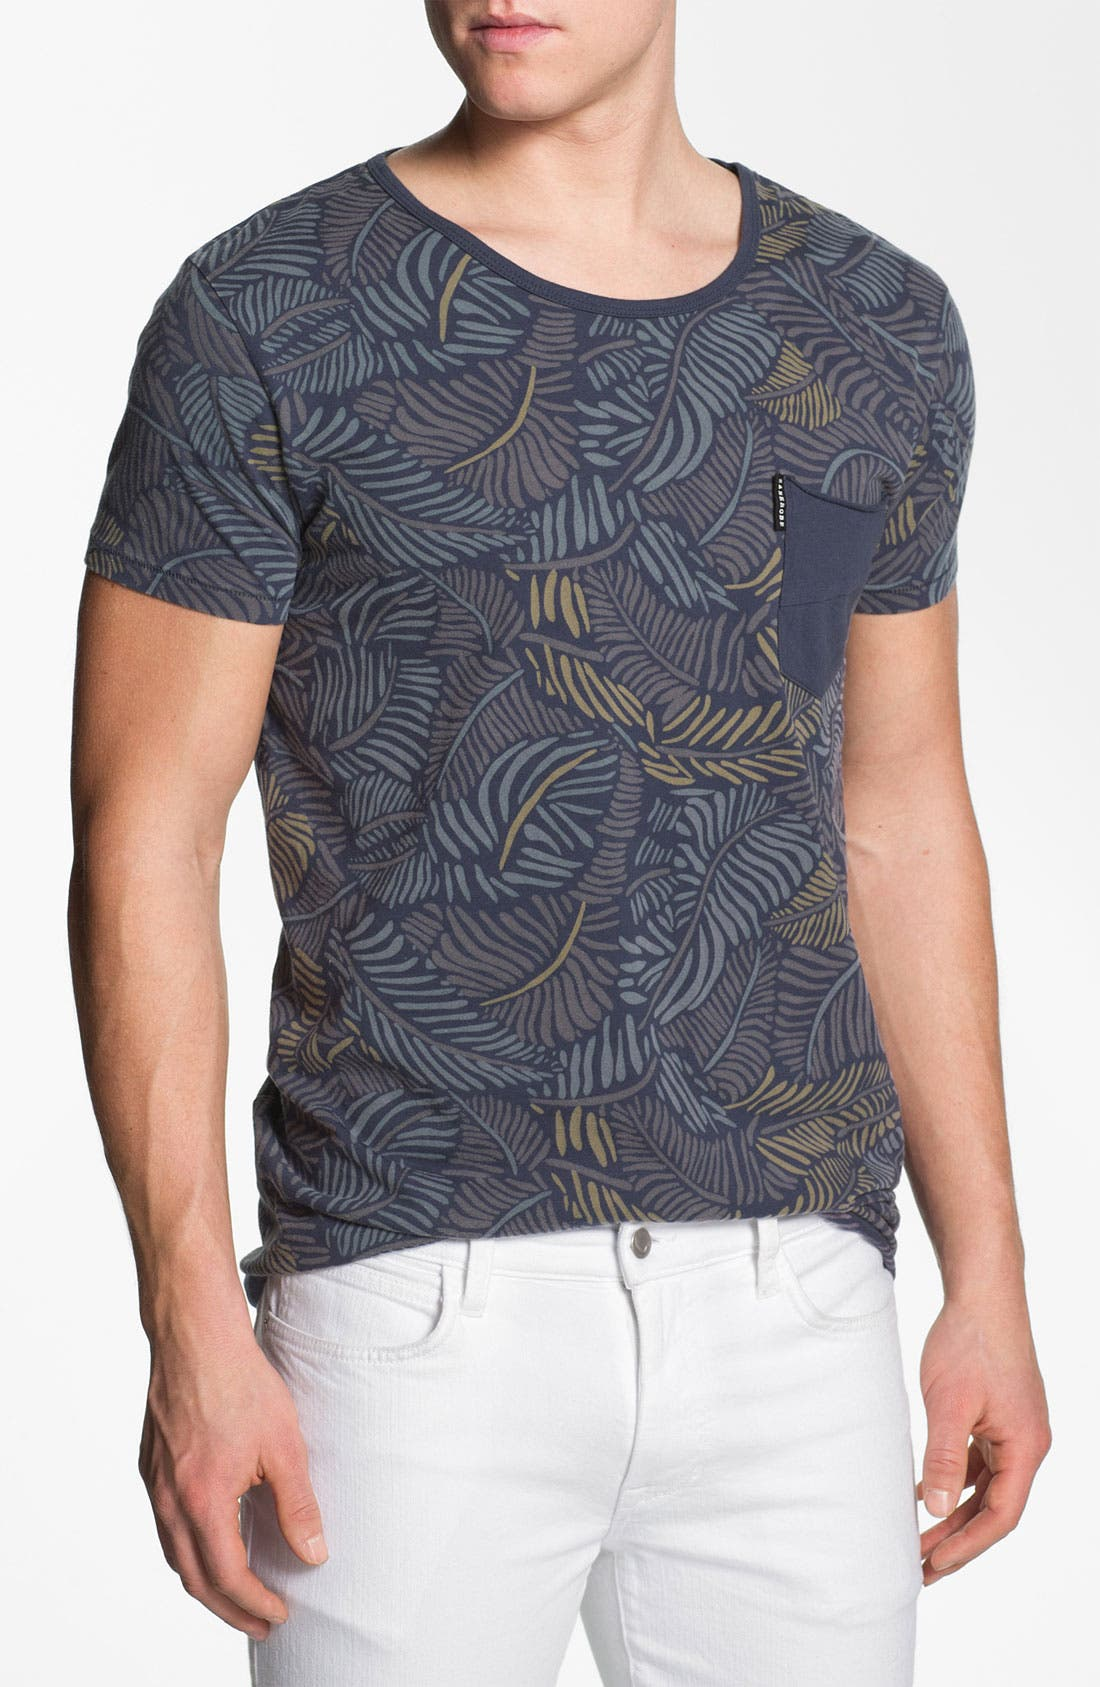 Main Image - Zanerobe 'Poleho' Allover Print Pocket T-Shirt